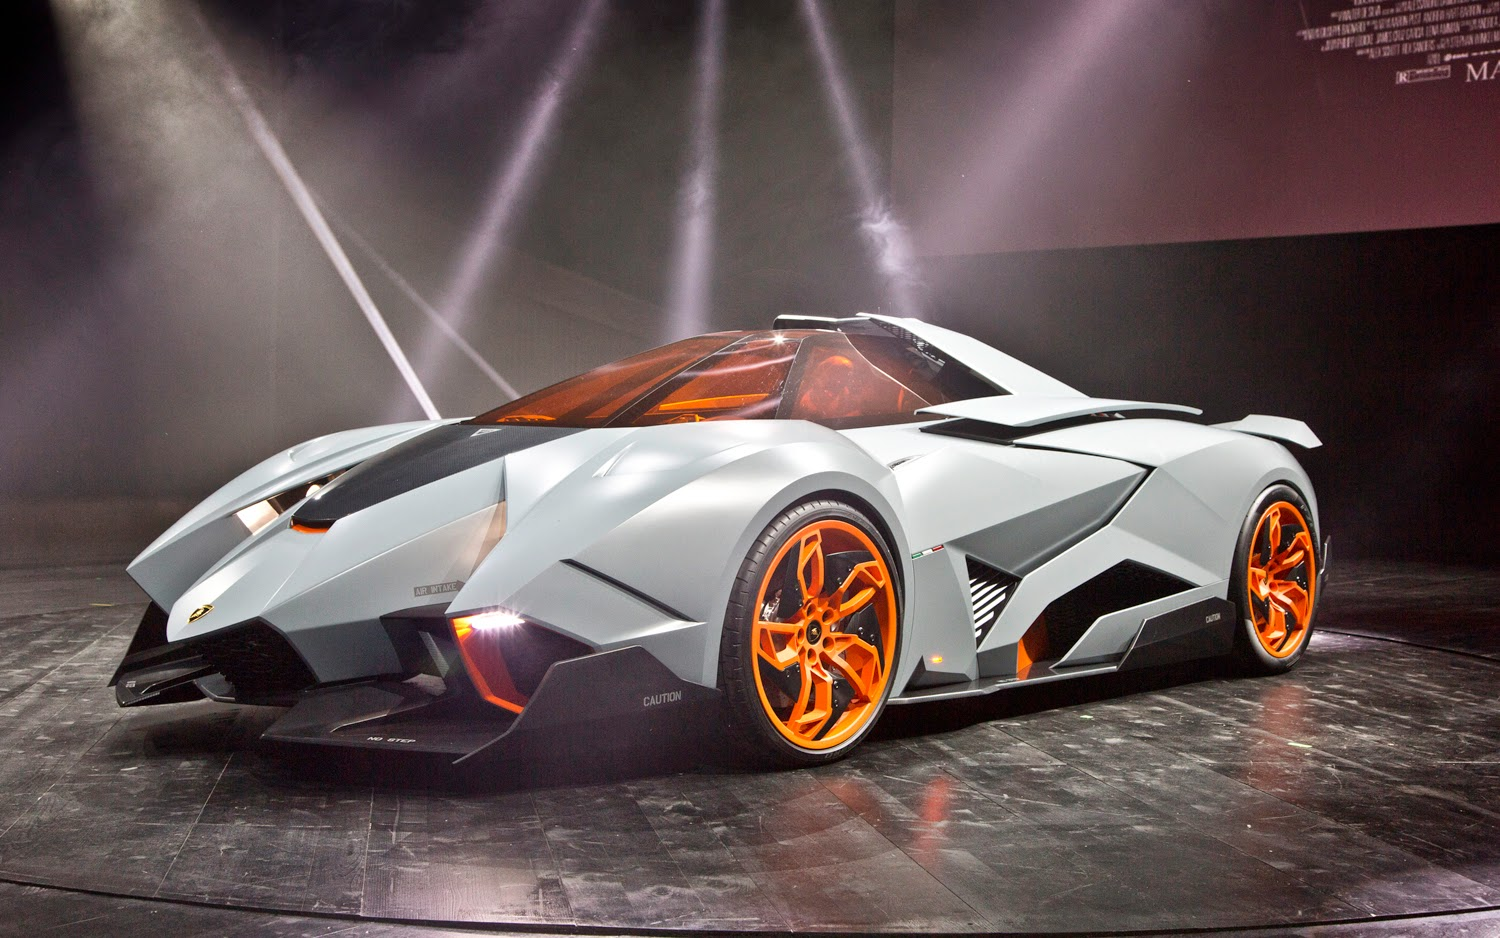 Attractive Also If You Want This Car You Should Get It There Are Lot S Of Types Of  Lambos Like The Veneno Or The Alventero The Spyder And Lots More